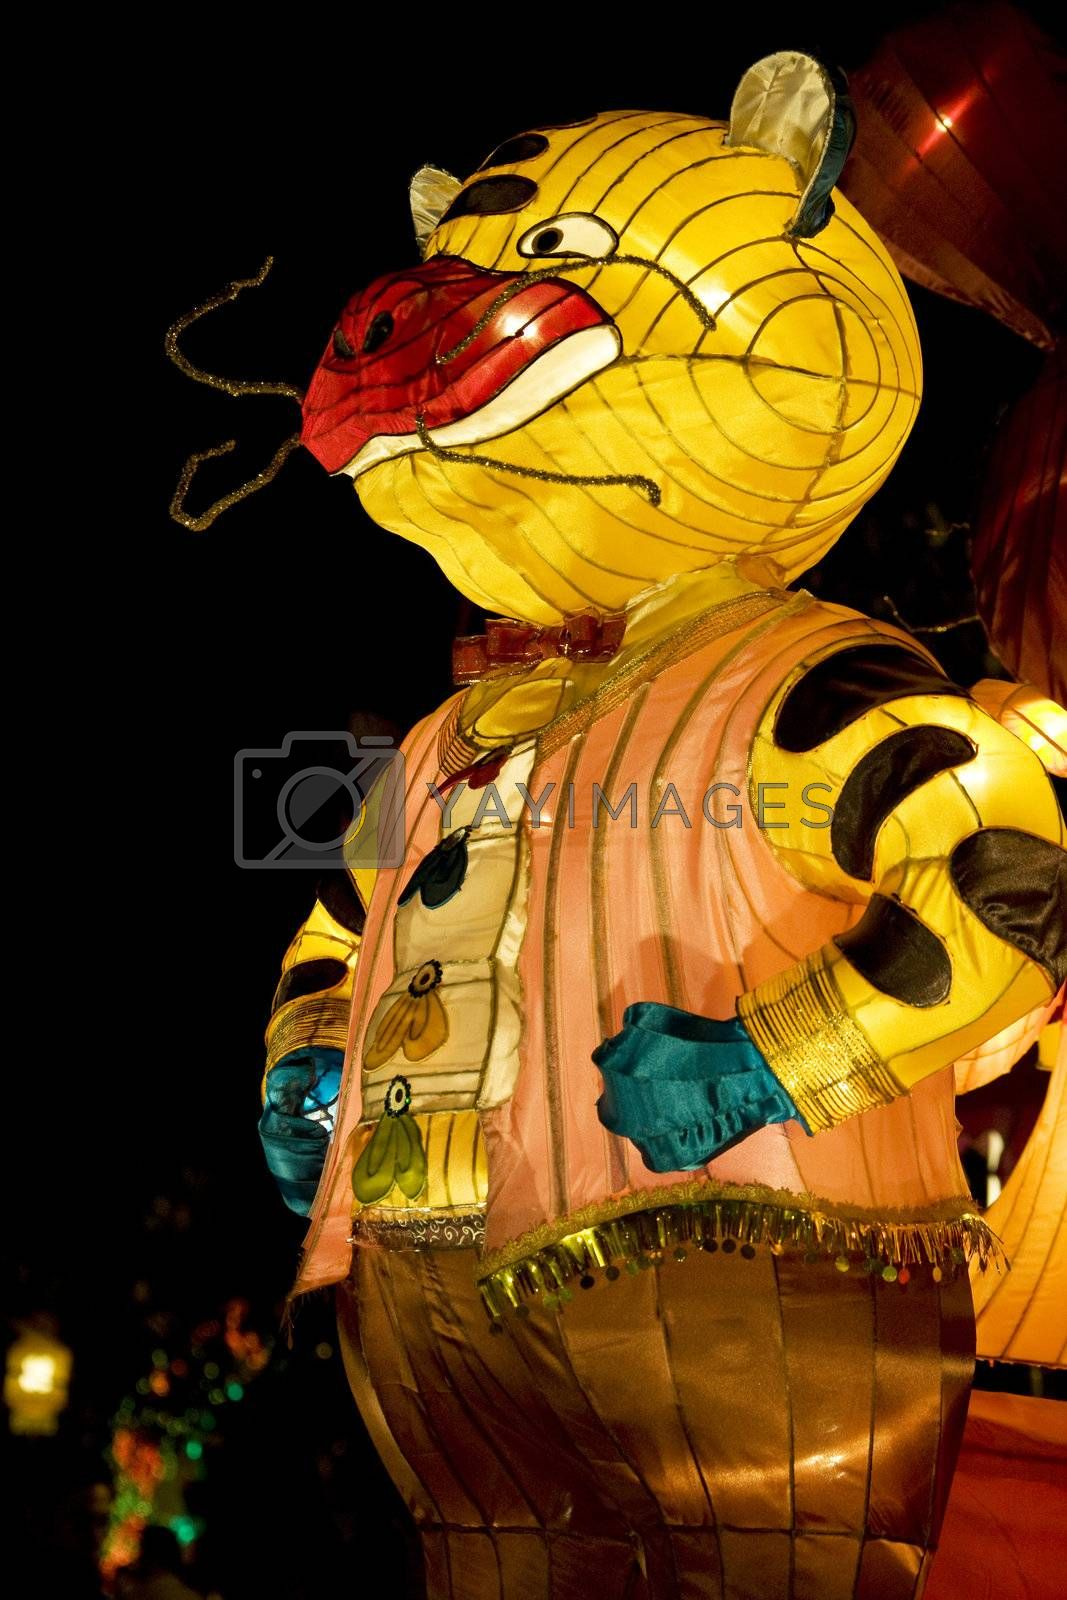 Image of a Chinese animal zodiac lantern depicting a tiger seen at the Dong Zen Chinese Temple in Malaysia during the Chinese New Year celebration on 26th January 2009.